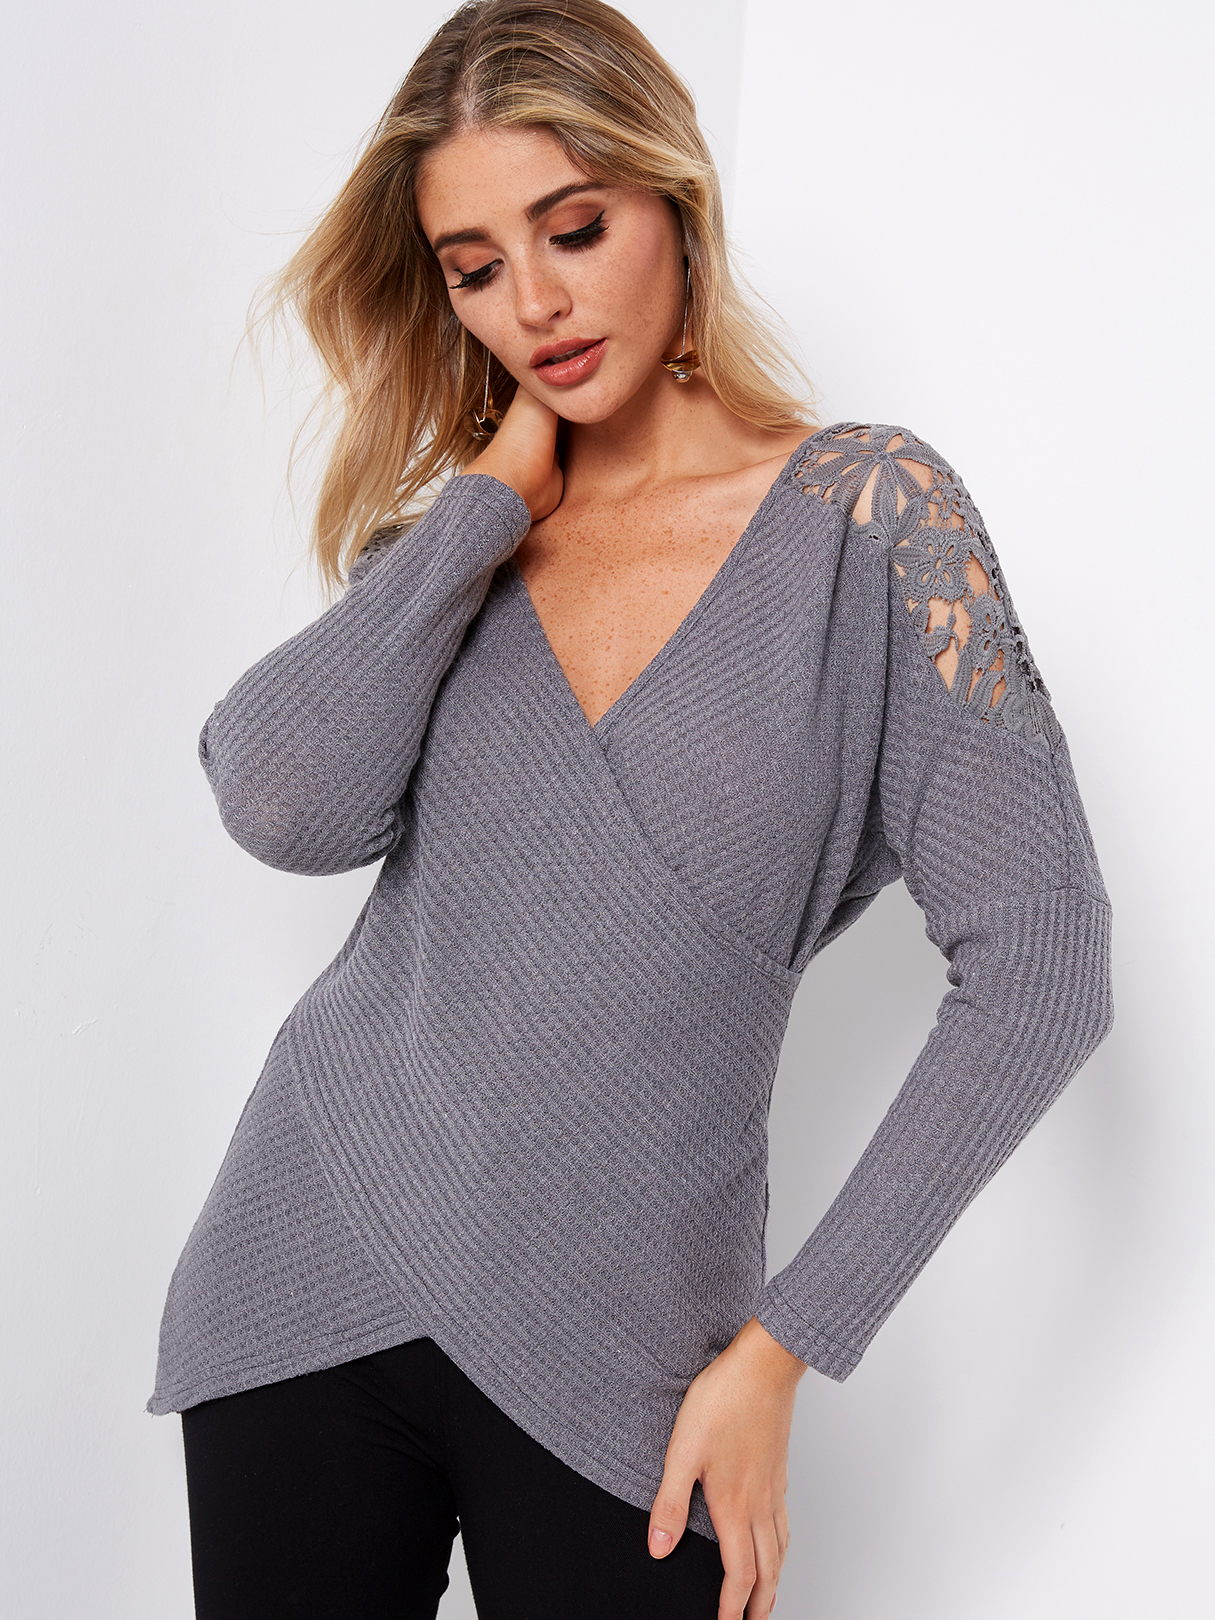 Grey Crossed Front Design Plain Deep V Neck Lace Insert Long Sleeves T-shirts